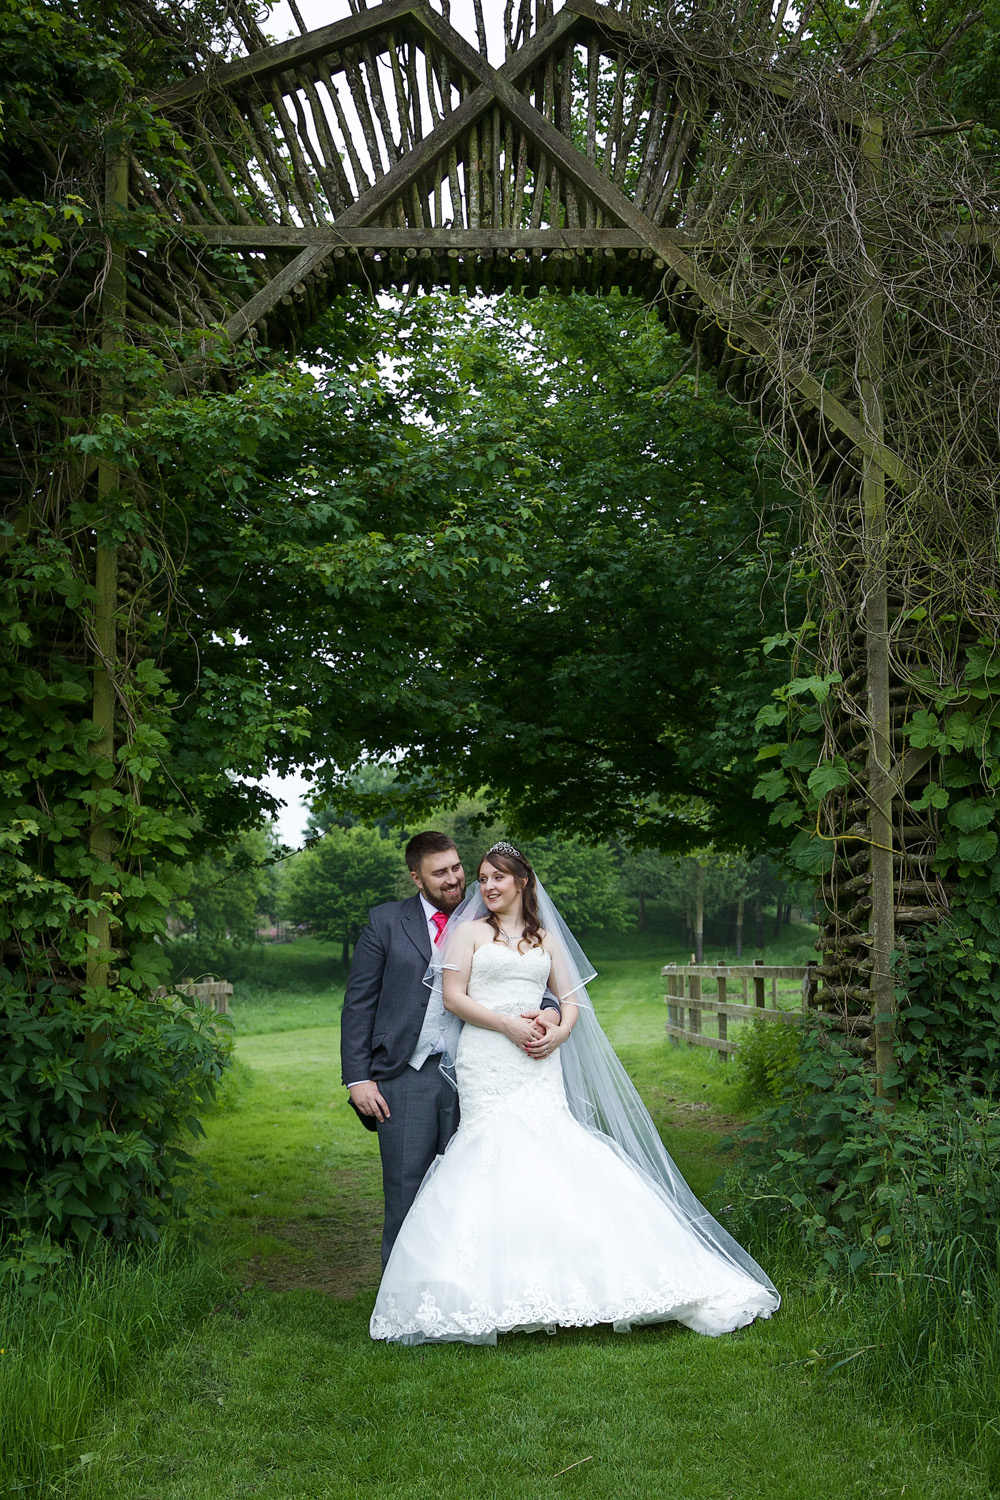 Sheepdrove_Eco_Centre_Wedding_Photographer_Hungerford_Berkshire_026.jpg